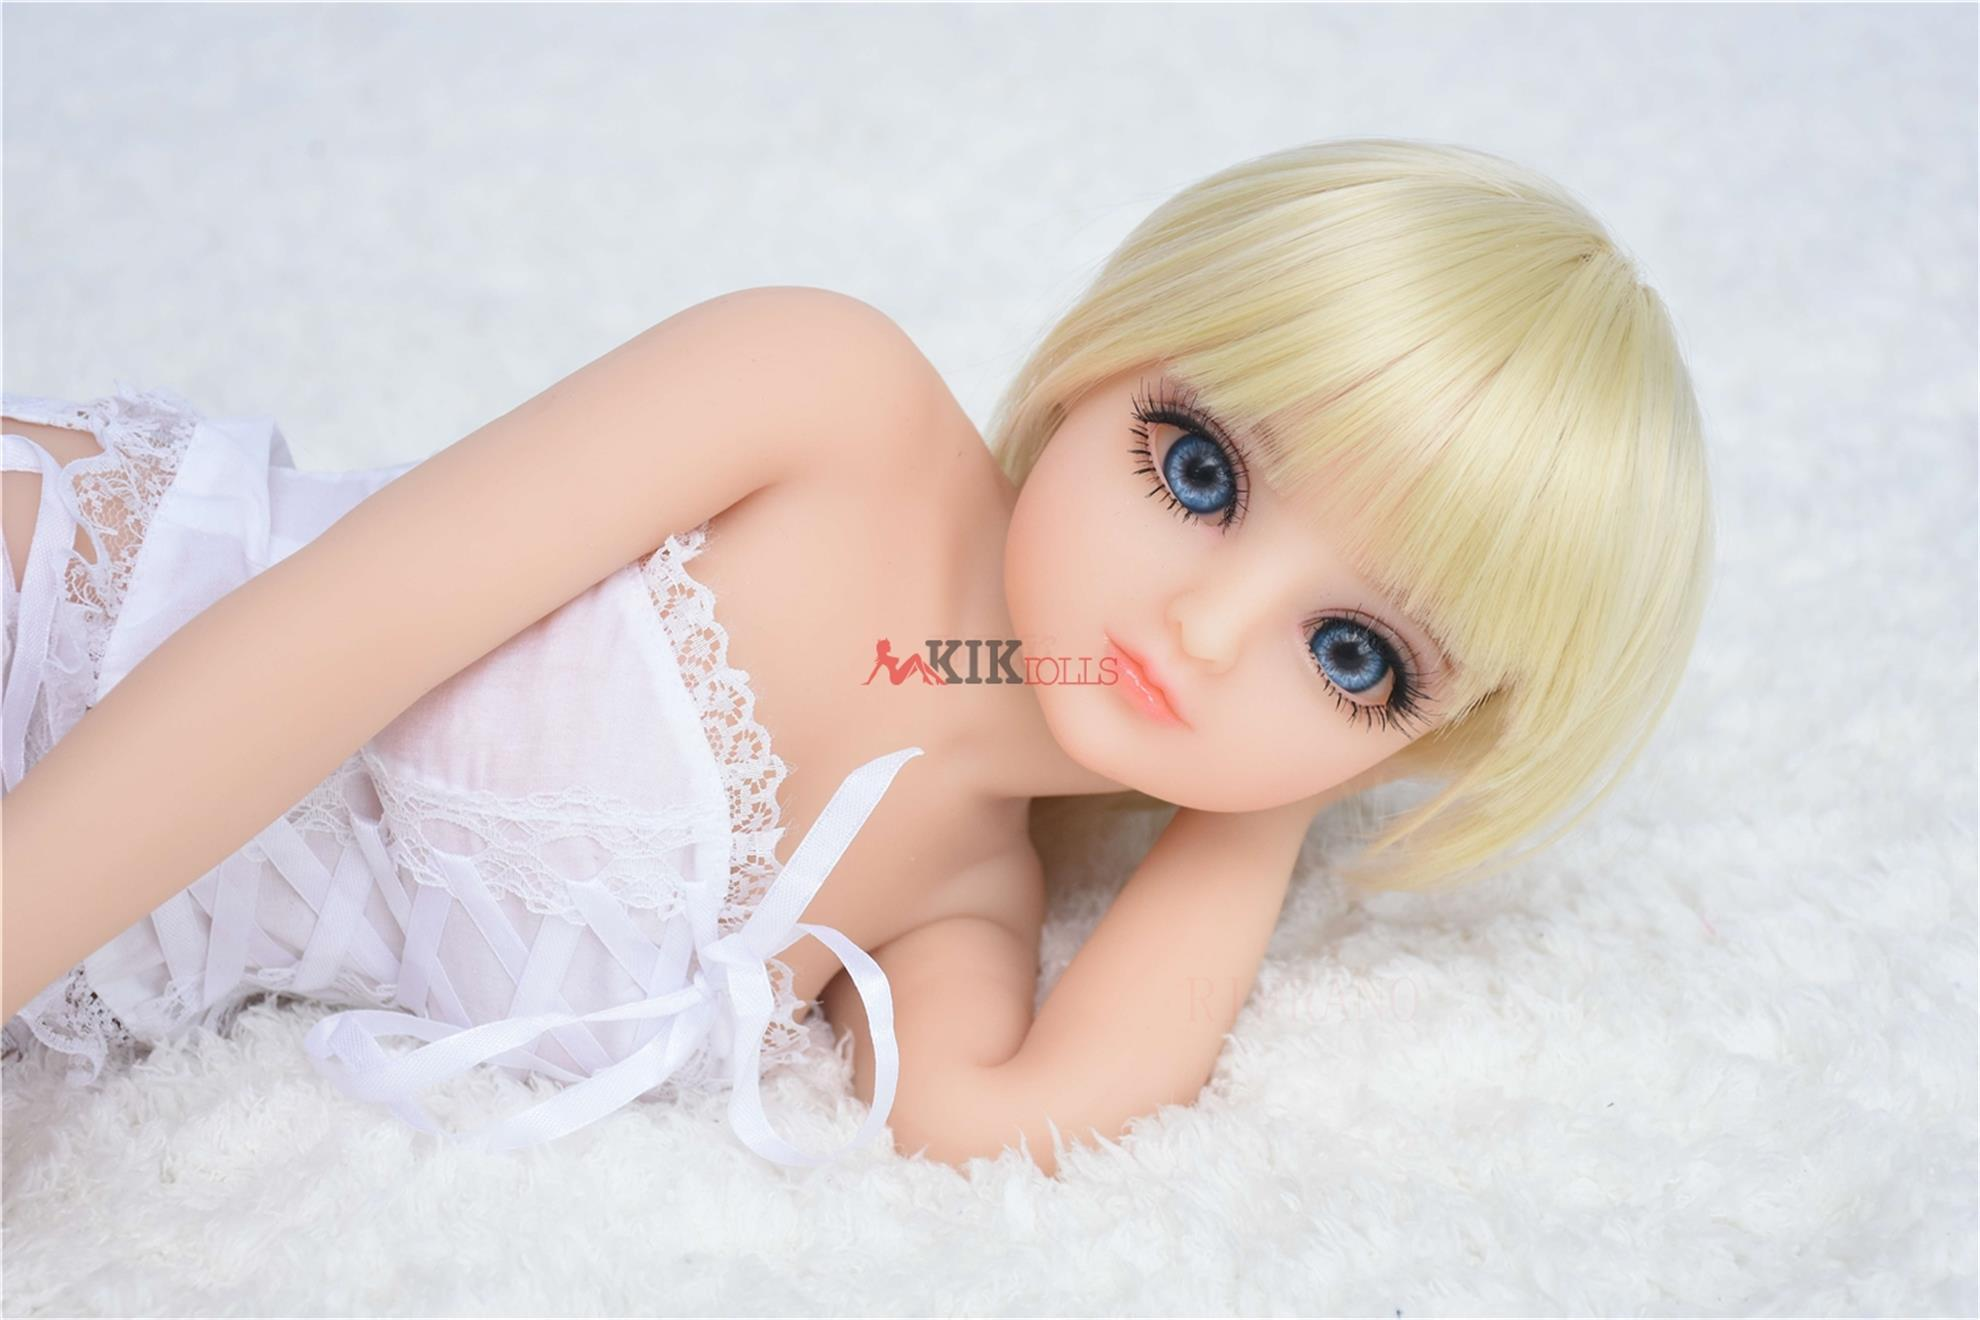 65cm small size tiny sex doll (31)